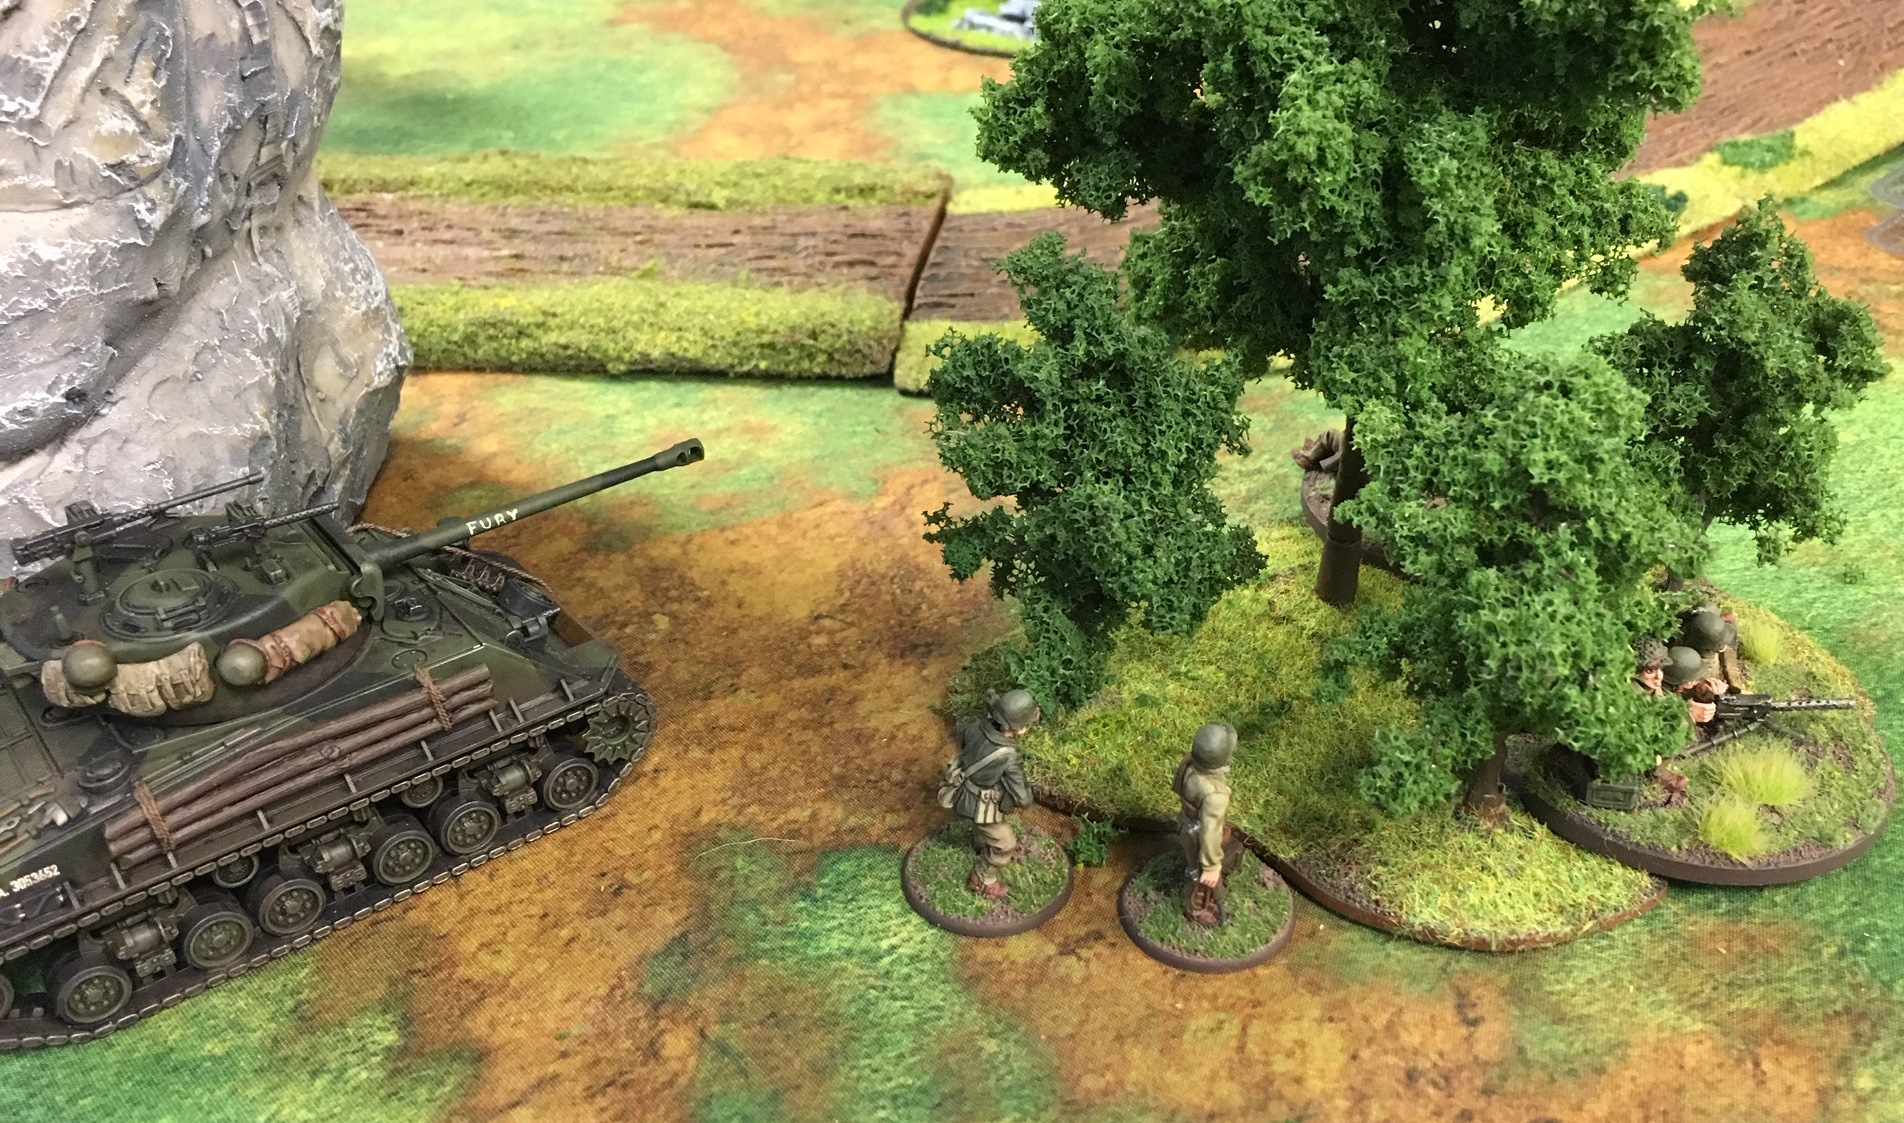 The Furious versus 1.Minensuchenflotille in a fierce infantry engagement